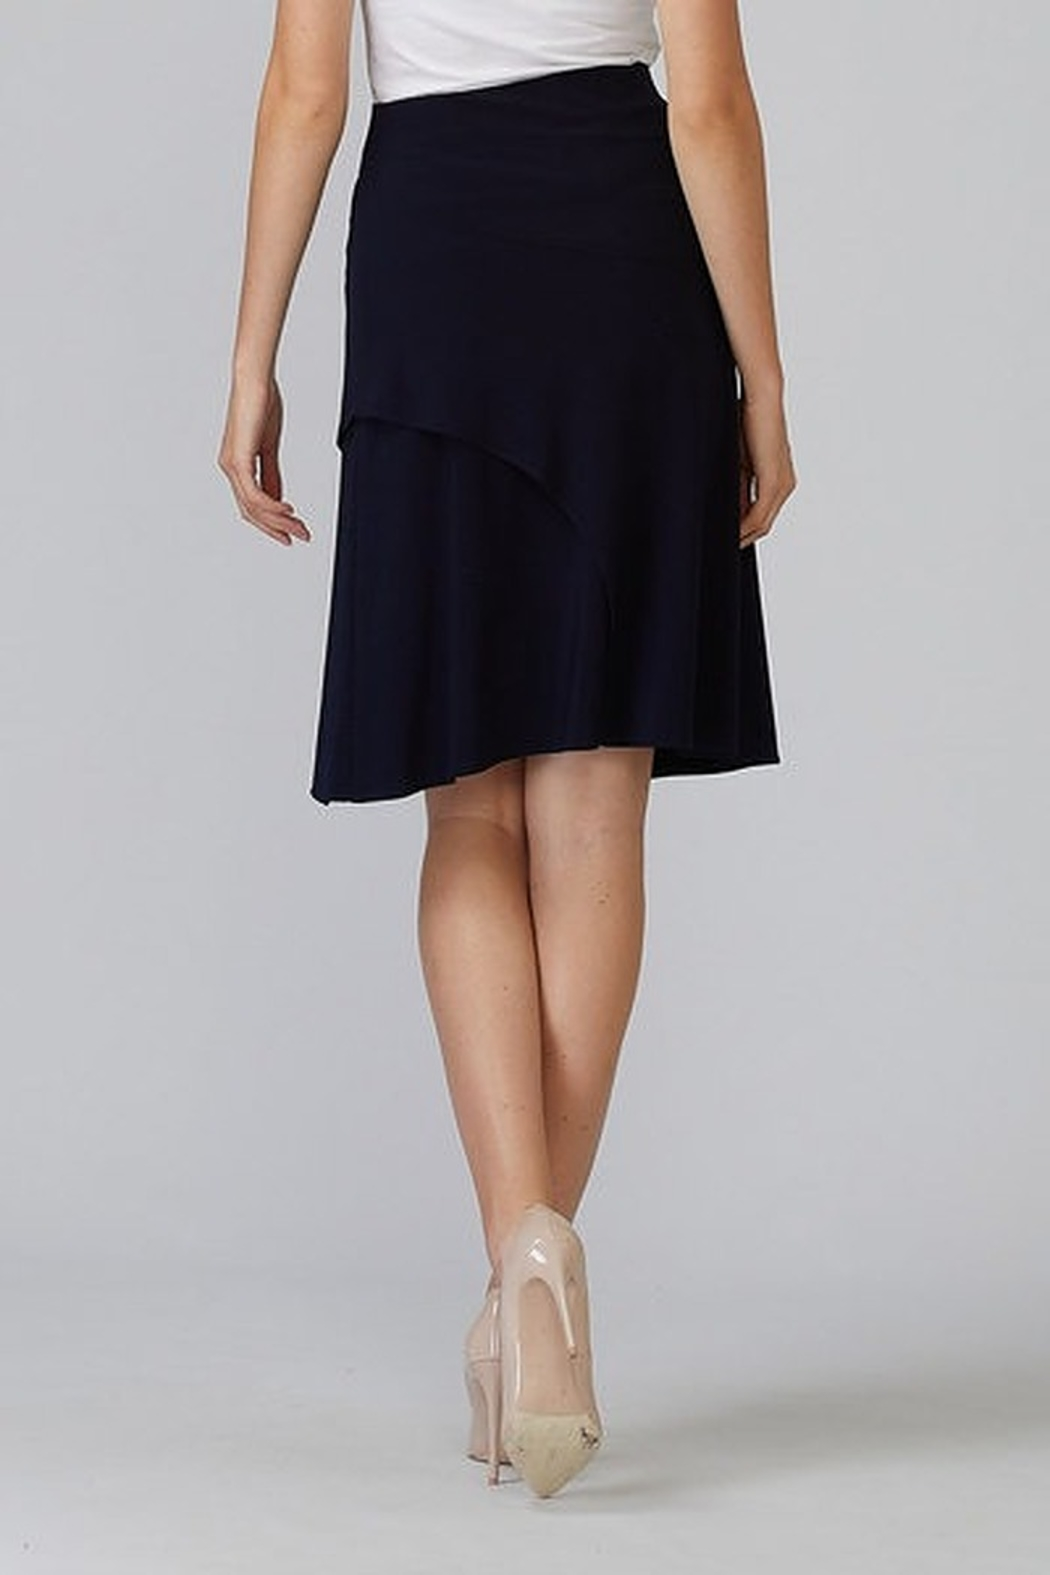 Joseph Ribkoff  A line knee length skirt - Side Cropped Image